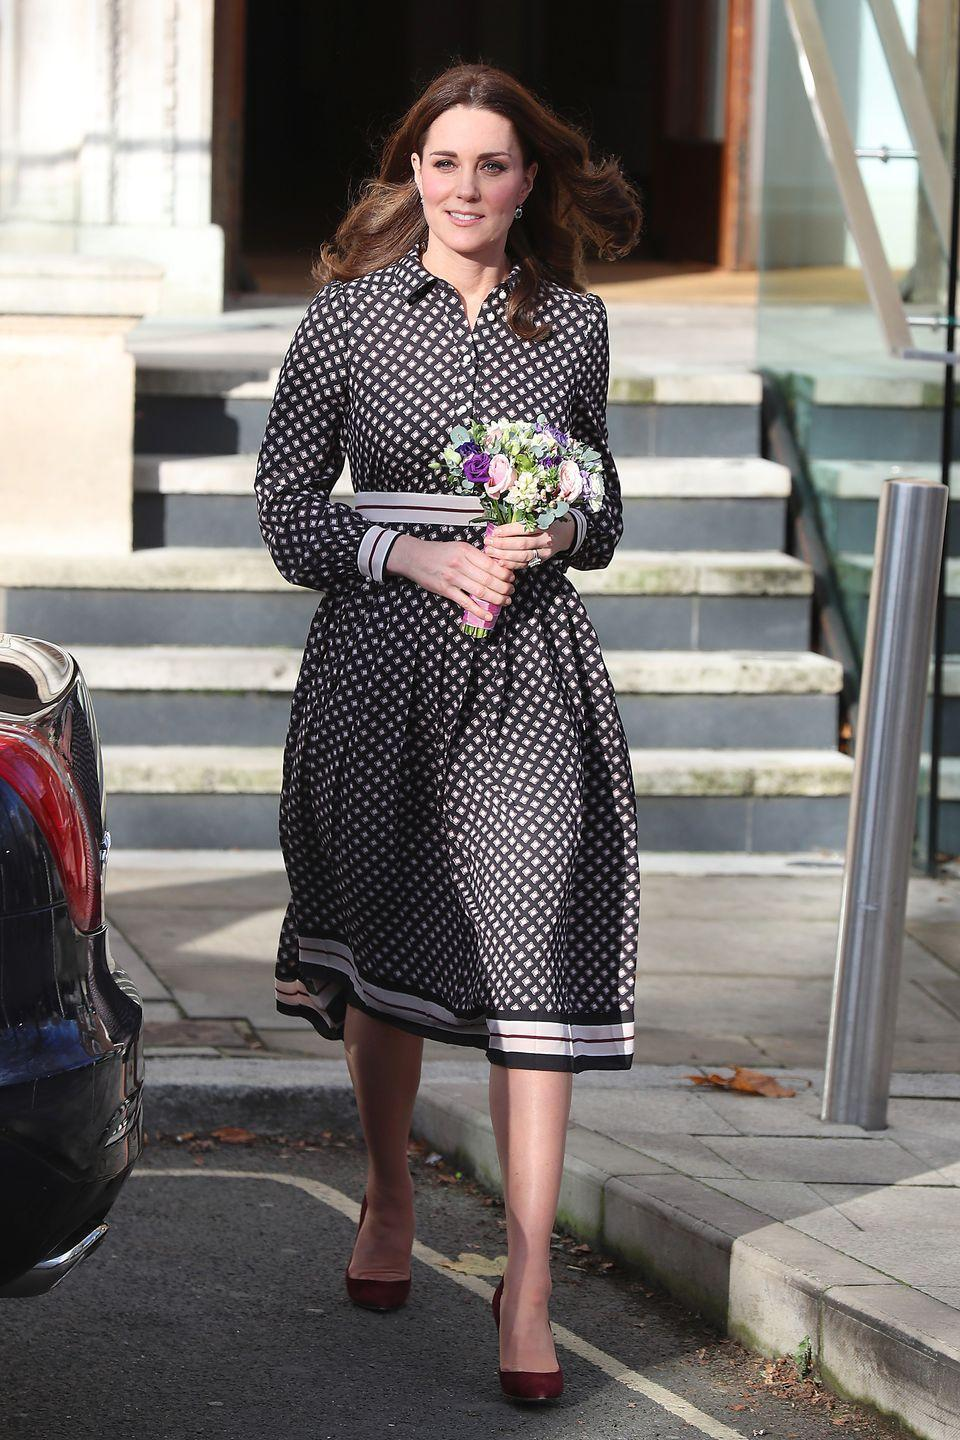 <p>The Duchess wears a Kate Spade dress and maroon suede pumps during her visit to The Foundling Museum in London. </p>